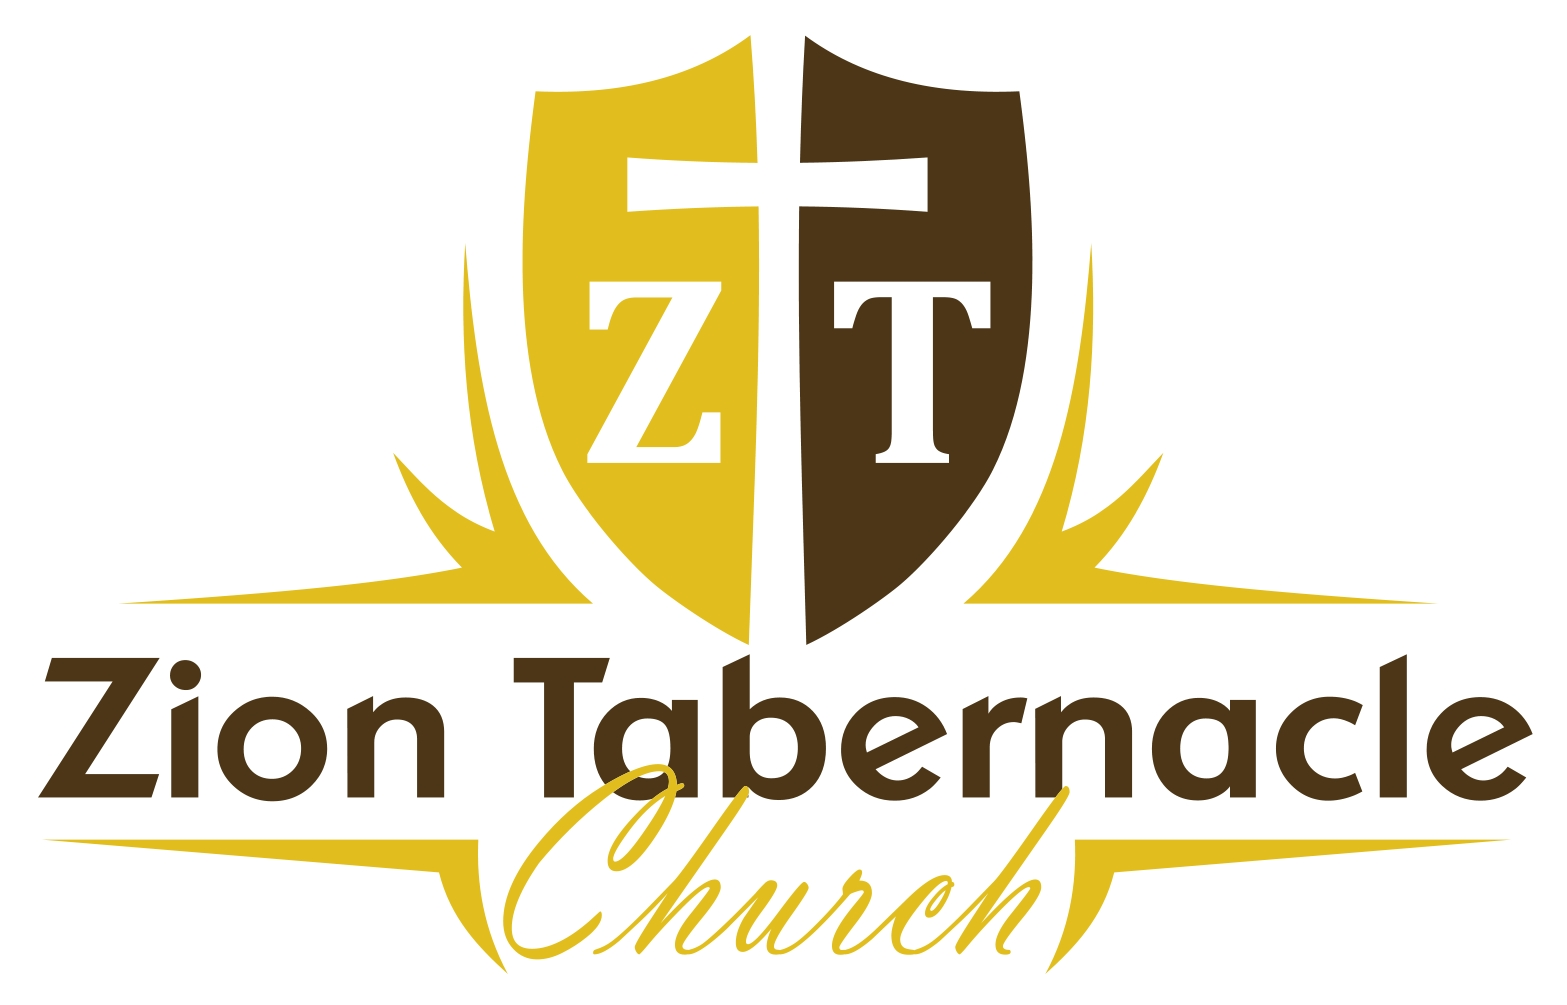 Zion Tablenacle Church